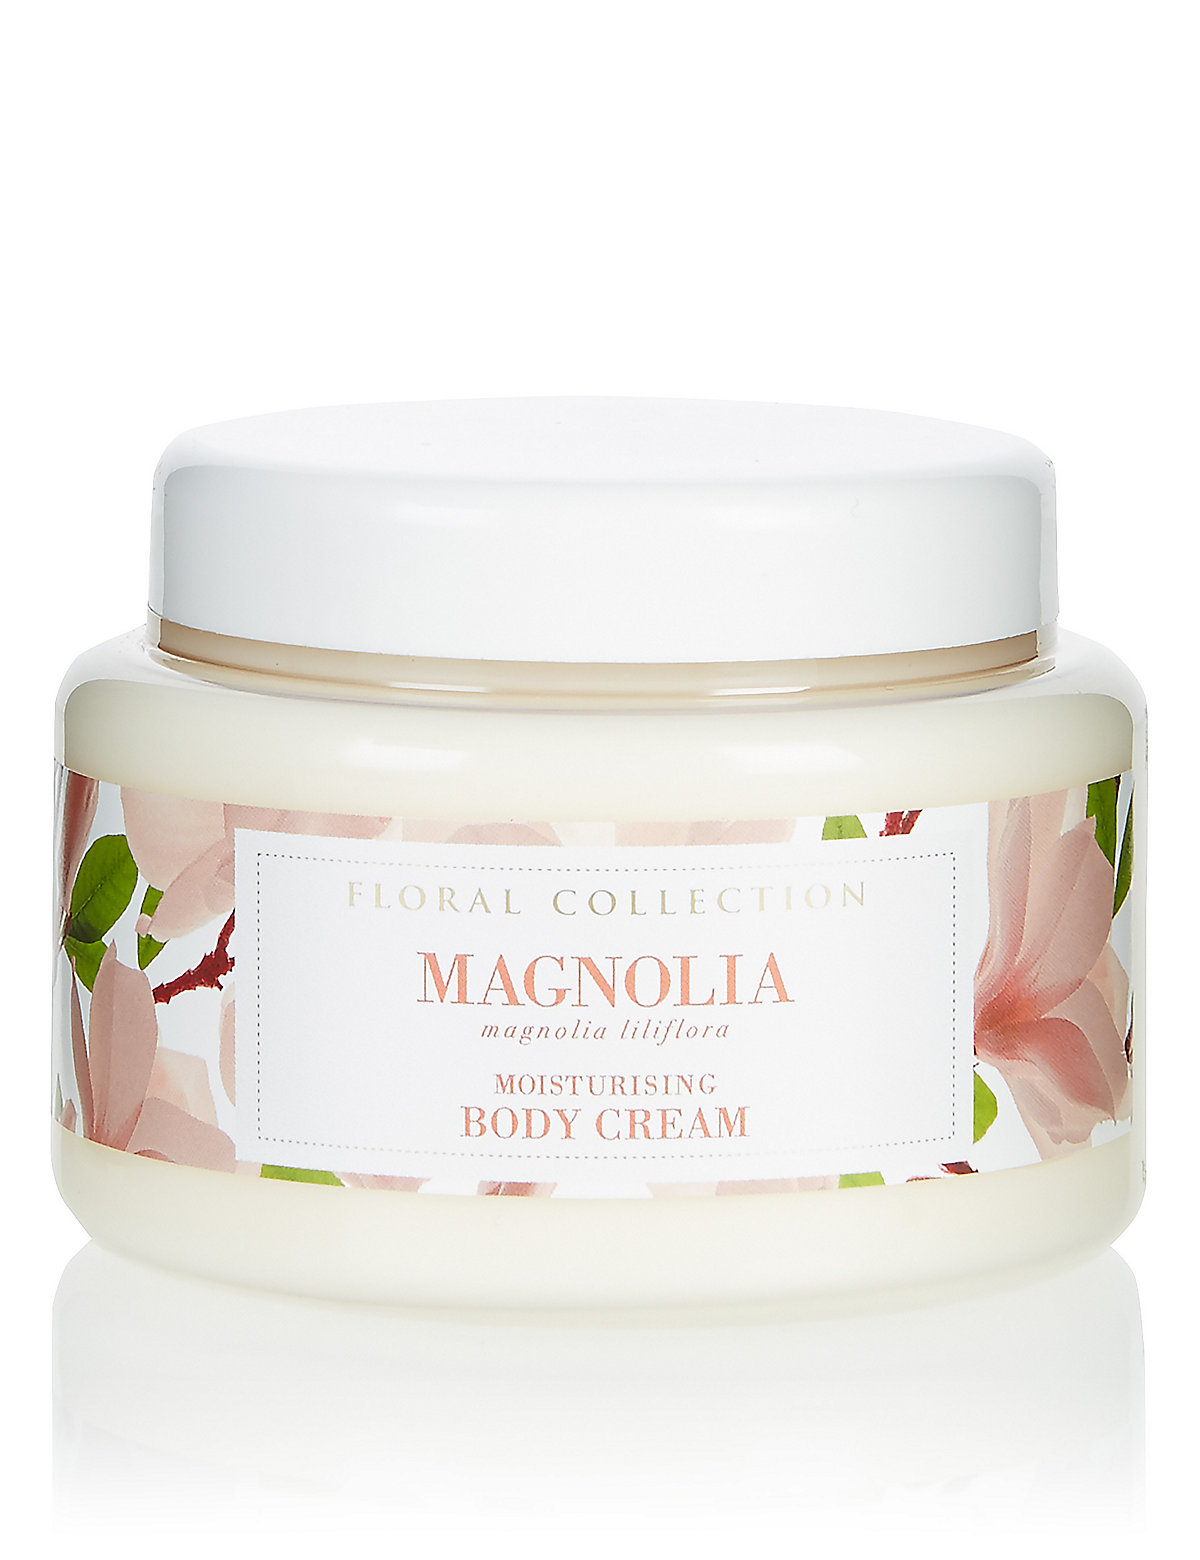 Image of Floral Collection Magnolia Body Cream 250ml